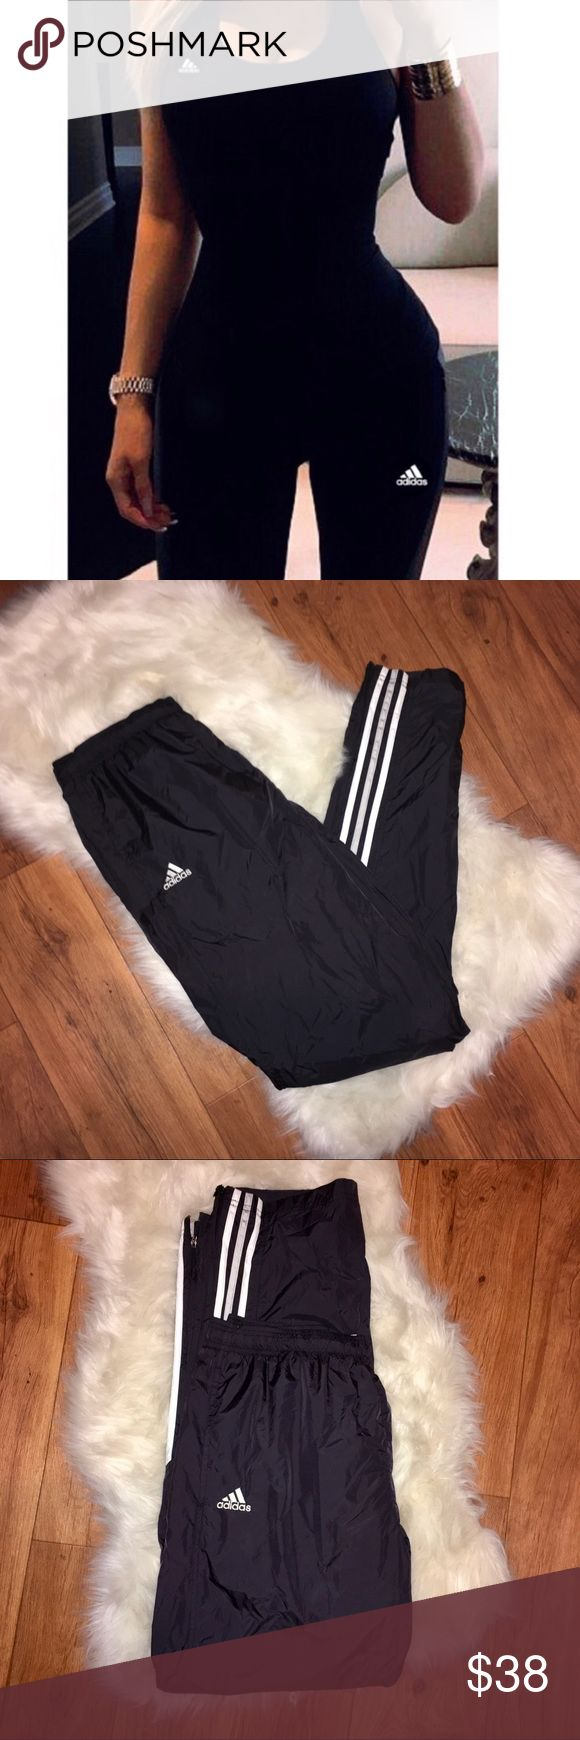 ⚡️Adidas Superstar Windbreaker Track Pants ⚡️Adidas Superstar Athletic Track Pants  - Black with white racing stripes down sides of the calves. Vintage 90's style.  Logo on front - Size Large- Windbreaker material - Athletic track pants, super comfortable  - loose, slouchy fit, strait legs, full length, zippers on the side of lower legs for looser fit. Lined with mesh inside. Gr at condition purchased from PACSUN TAGS: #pacsun #athletic #90s #gym adidas Pants Track Pants & Joggers